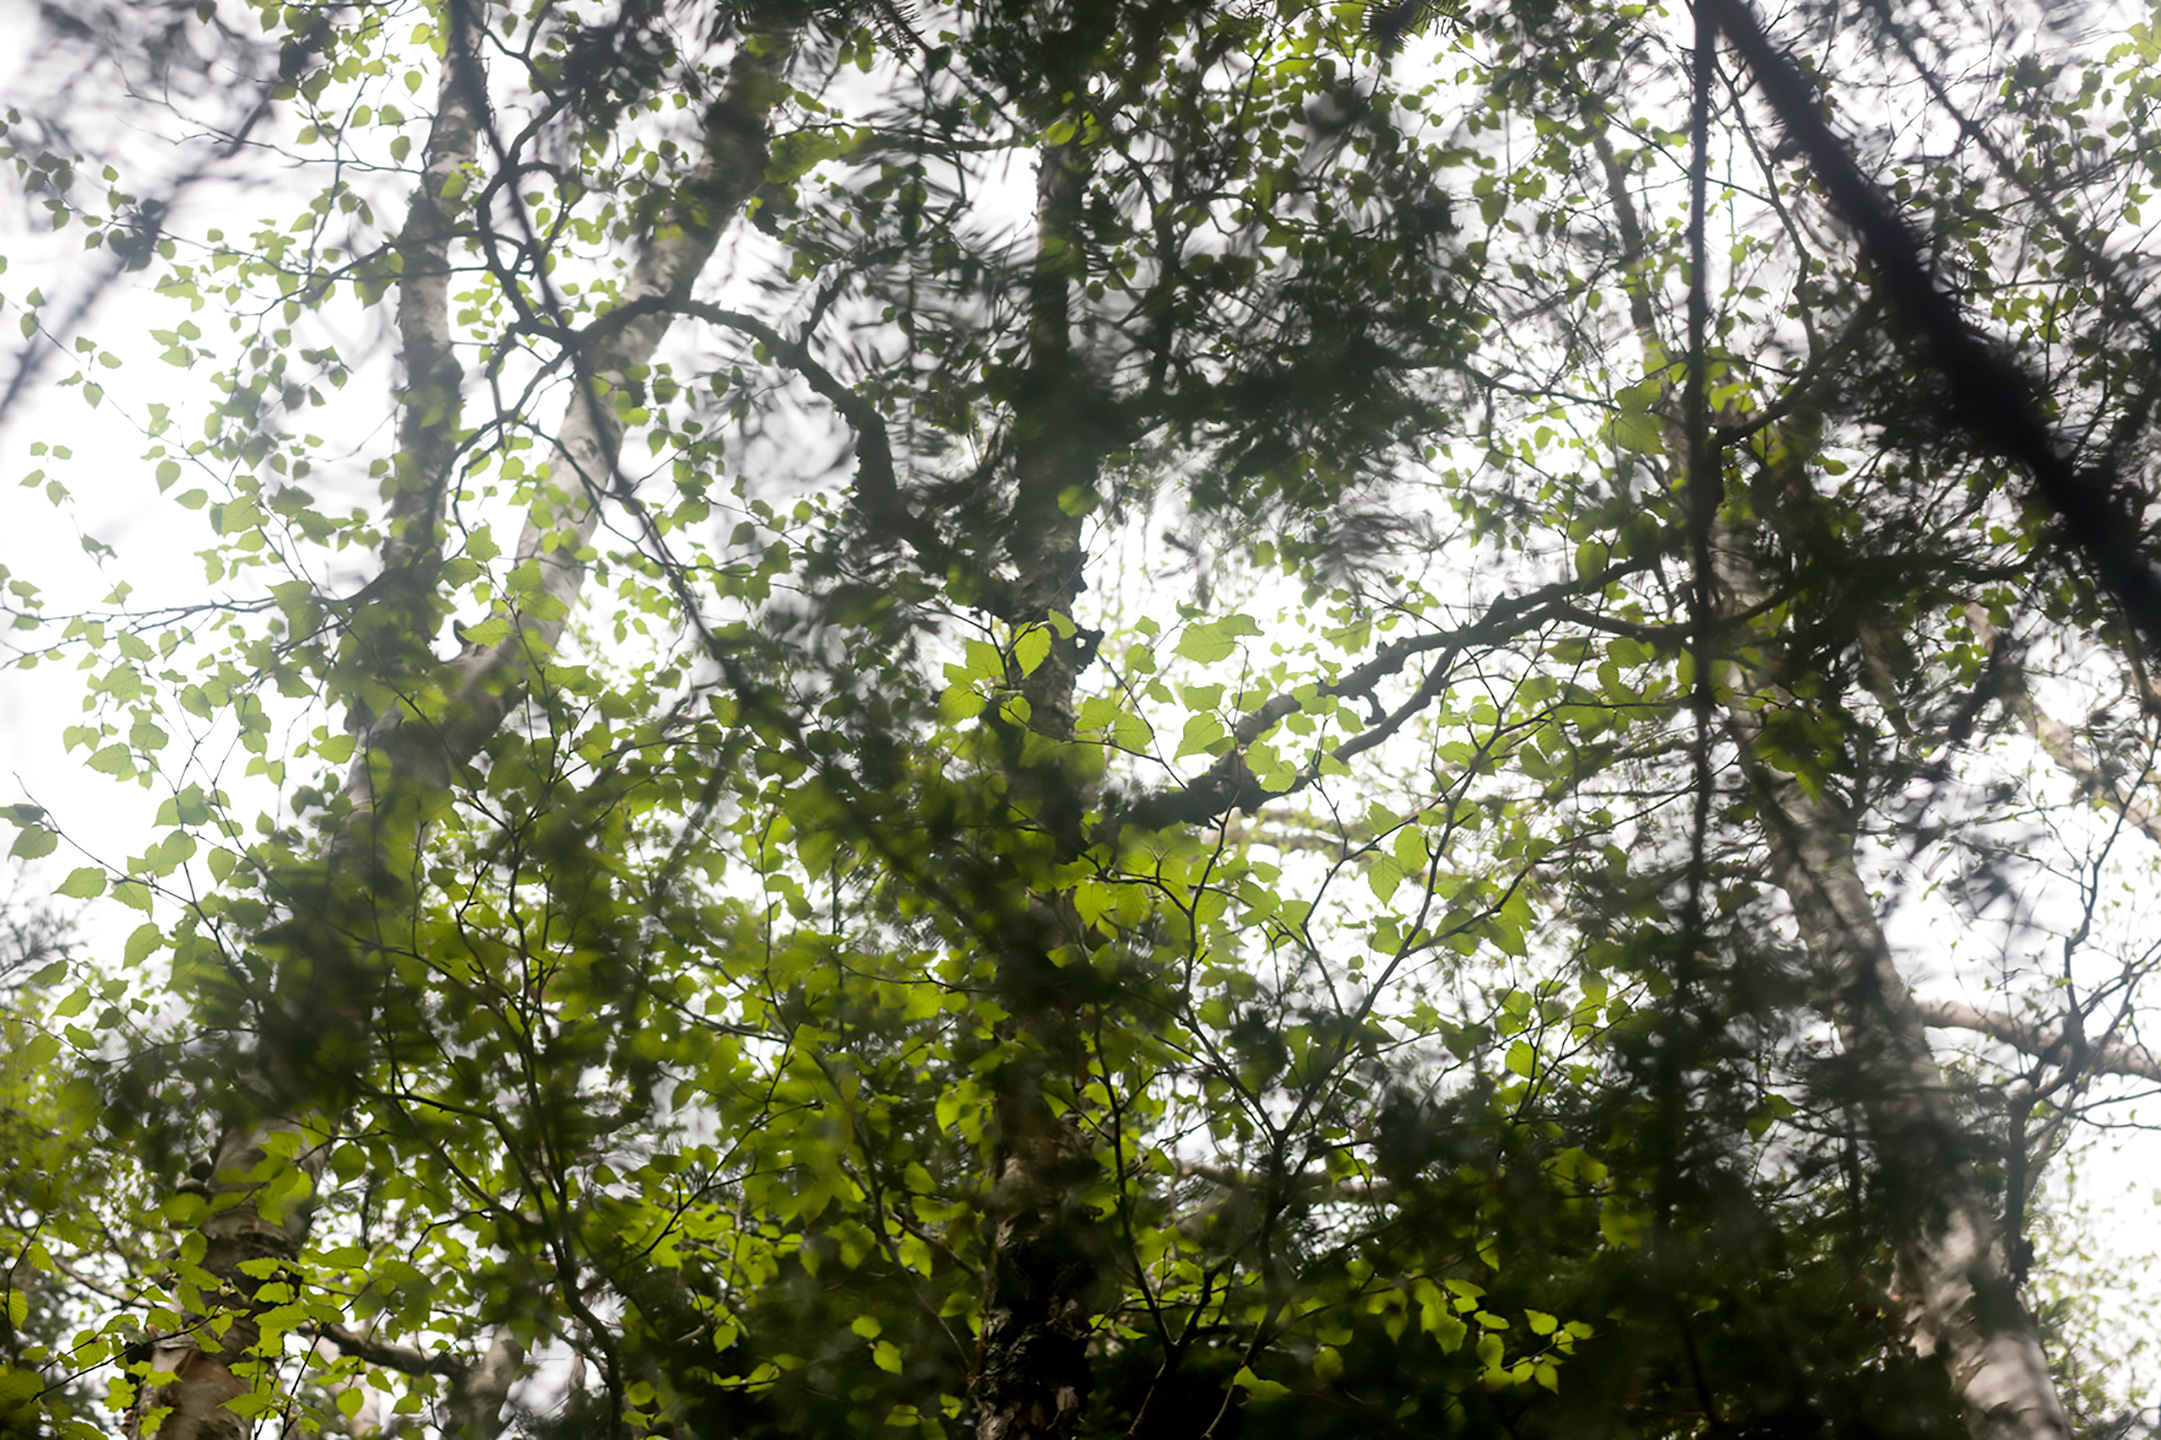 Abstracted tree branches, looking up through a forest.